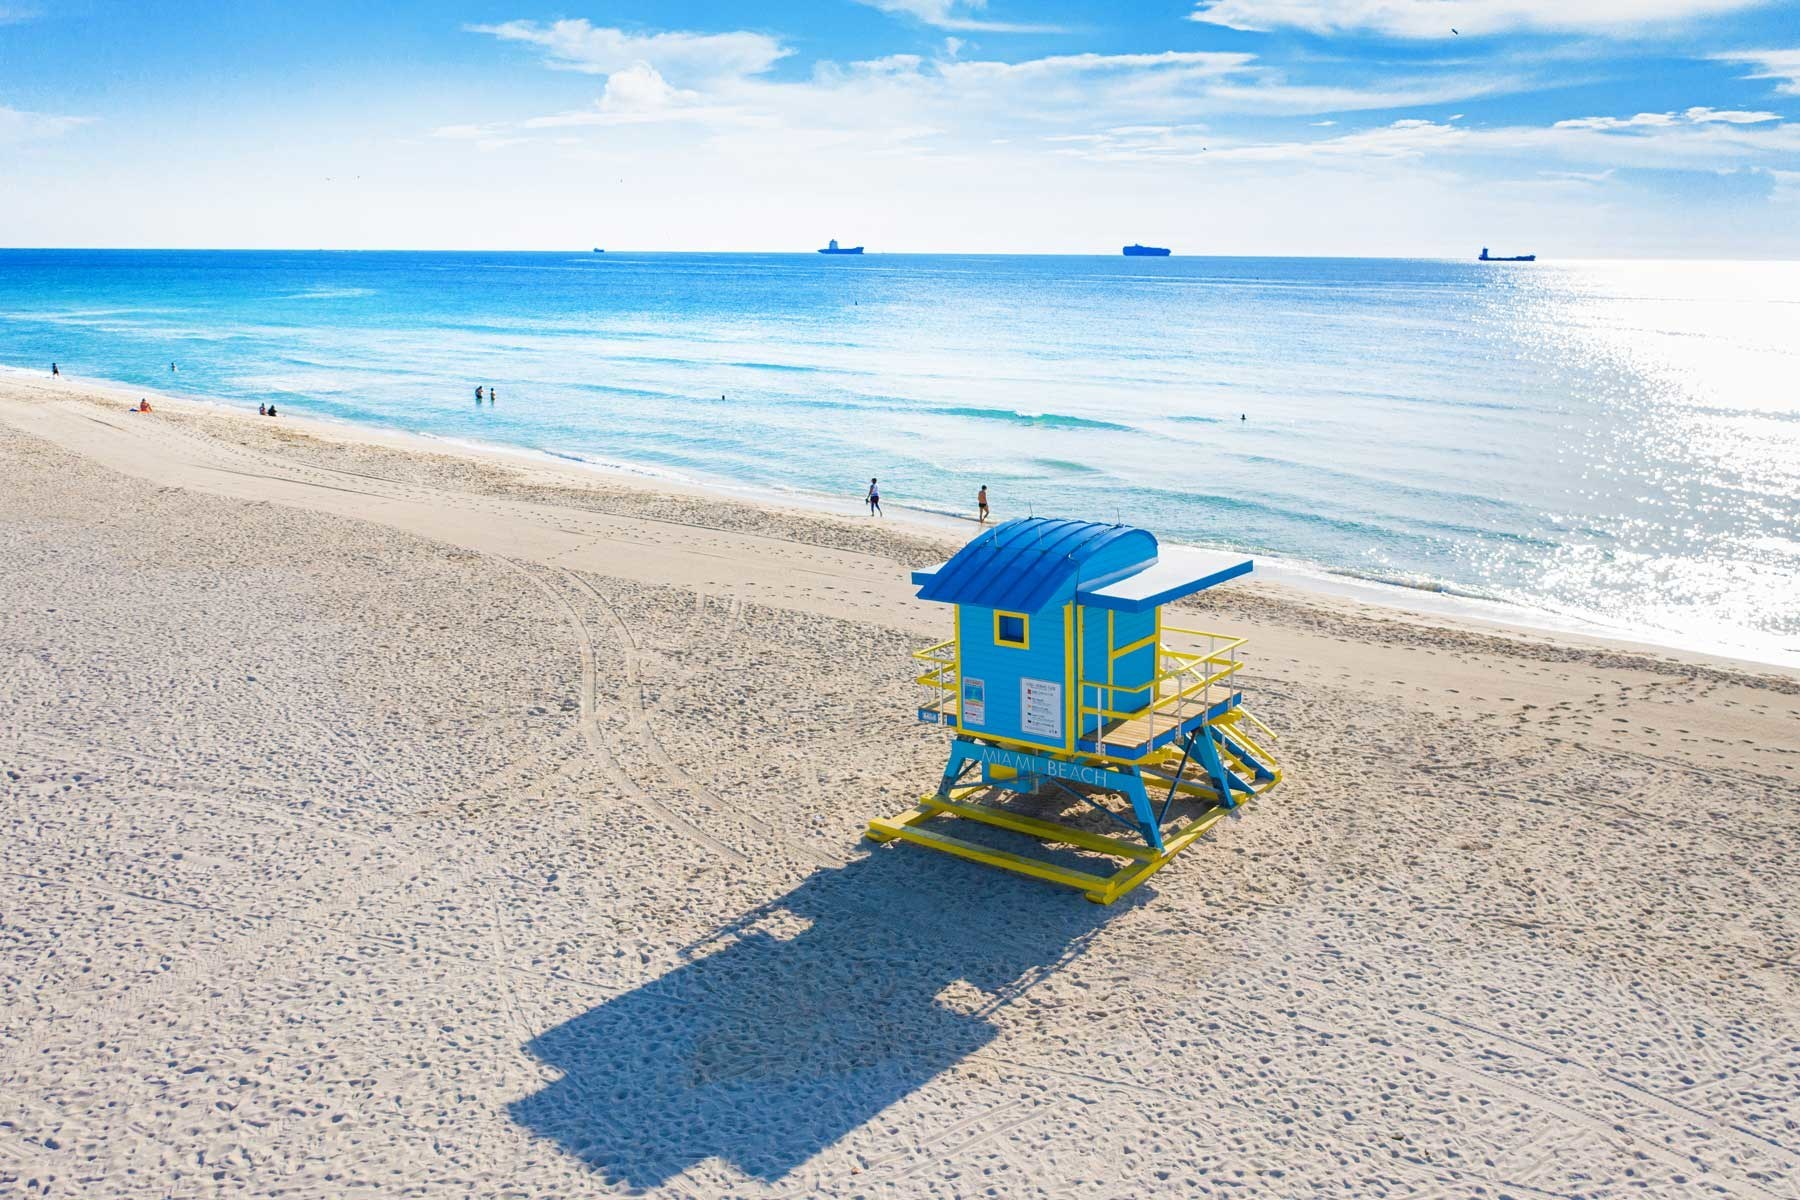 Starting Wednesday, May 20, travel lovers can enter to win a number of Miami Beach experiences to enjoy as they make future, bucket list travel plans.